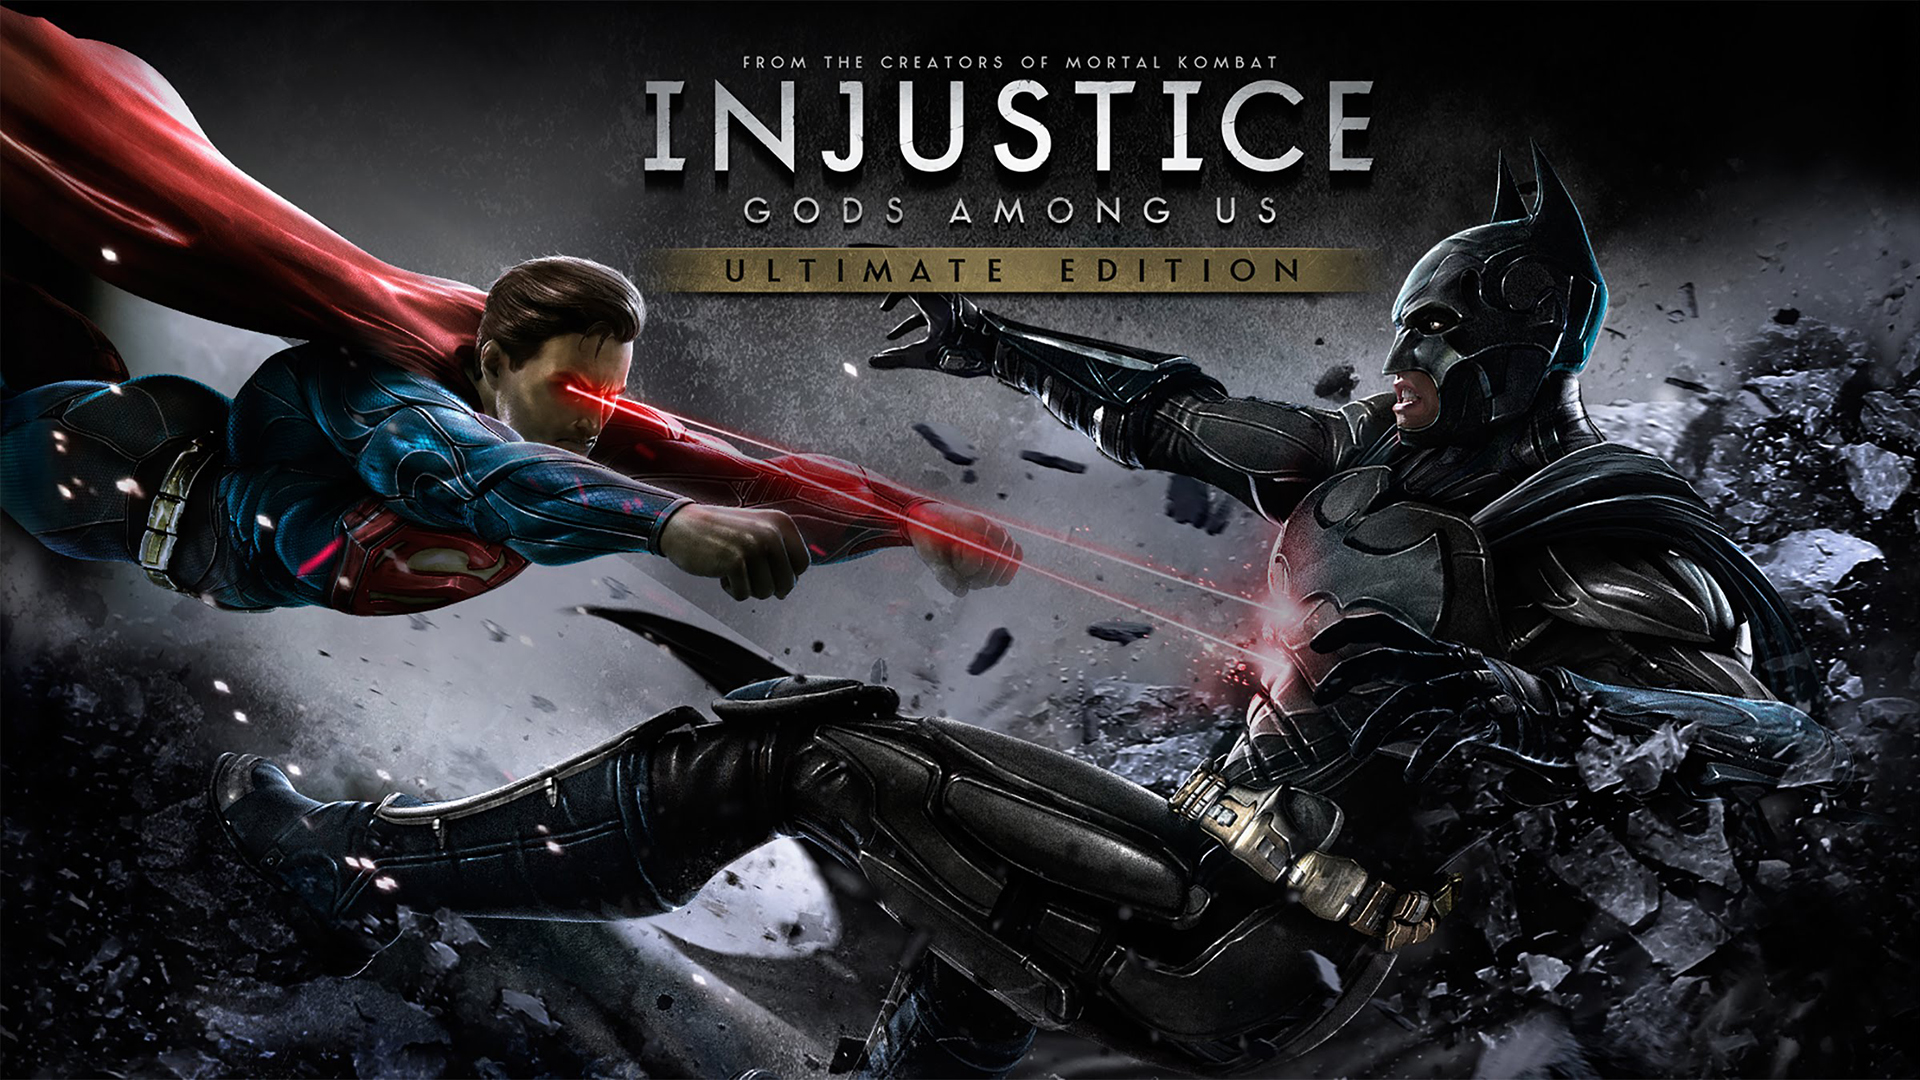 Injustice Gods Among Us Hd Wallpaper Background Image 1920x1080 Id 790895 Wallpaper Abyss